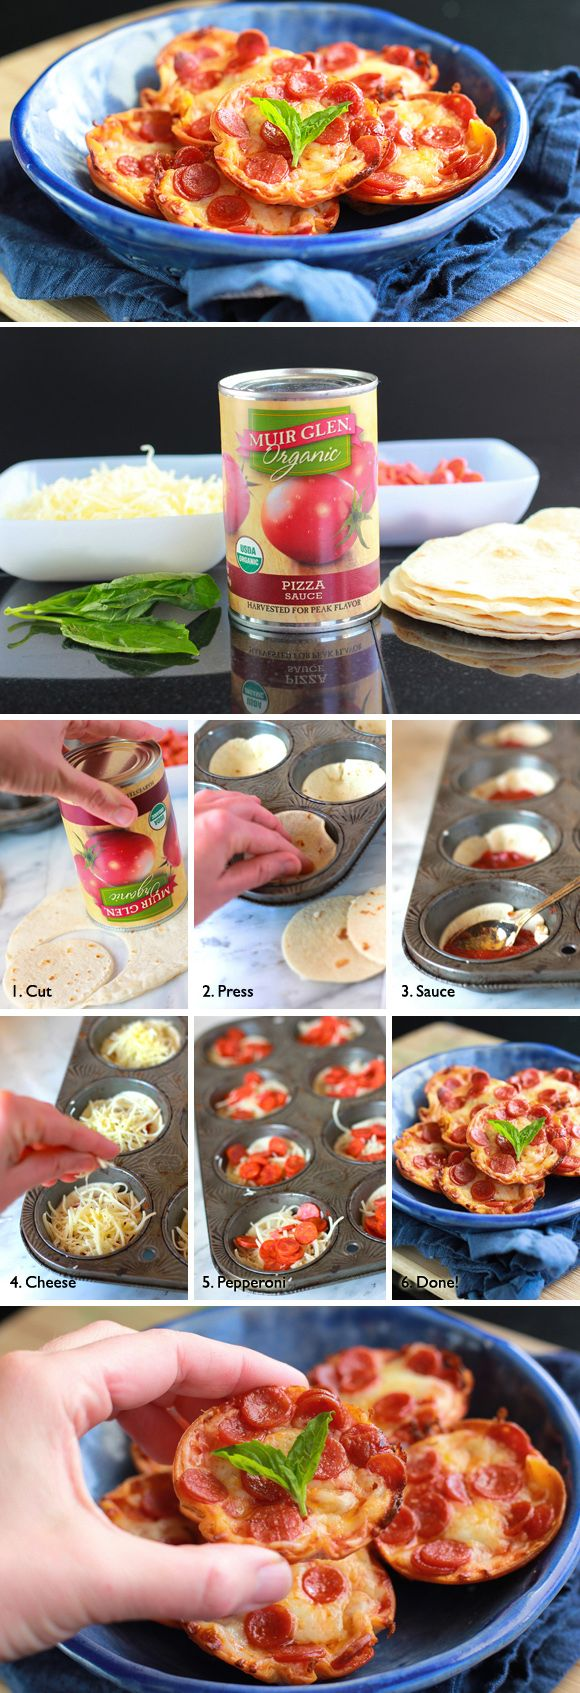 Mini pizzas crujientes de pepperoni / http://www.tablespoon.com/the-bloggers/cheekykitchen